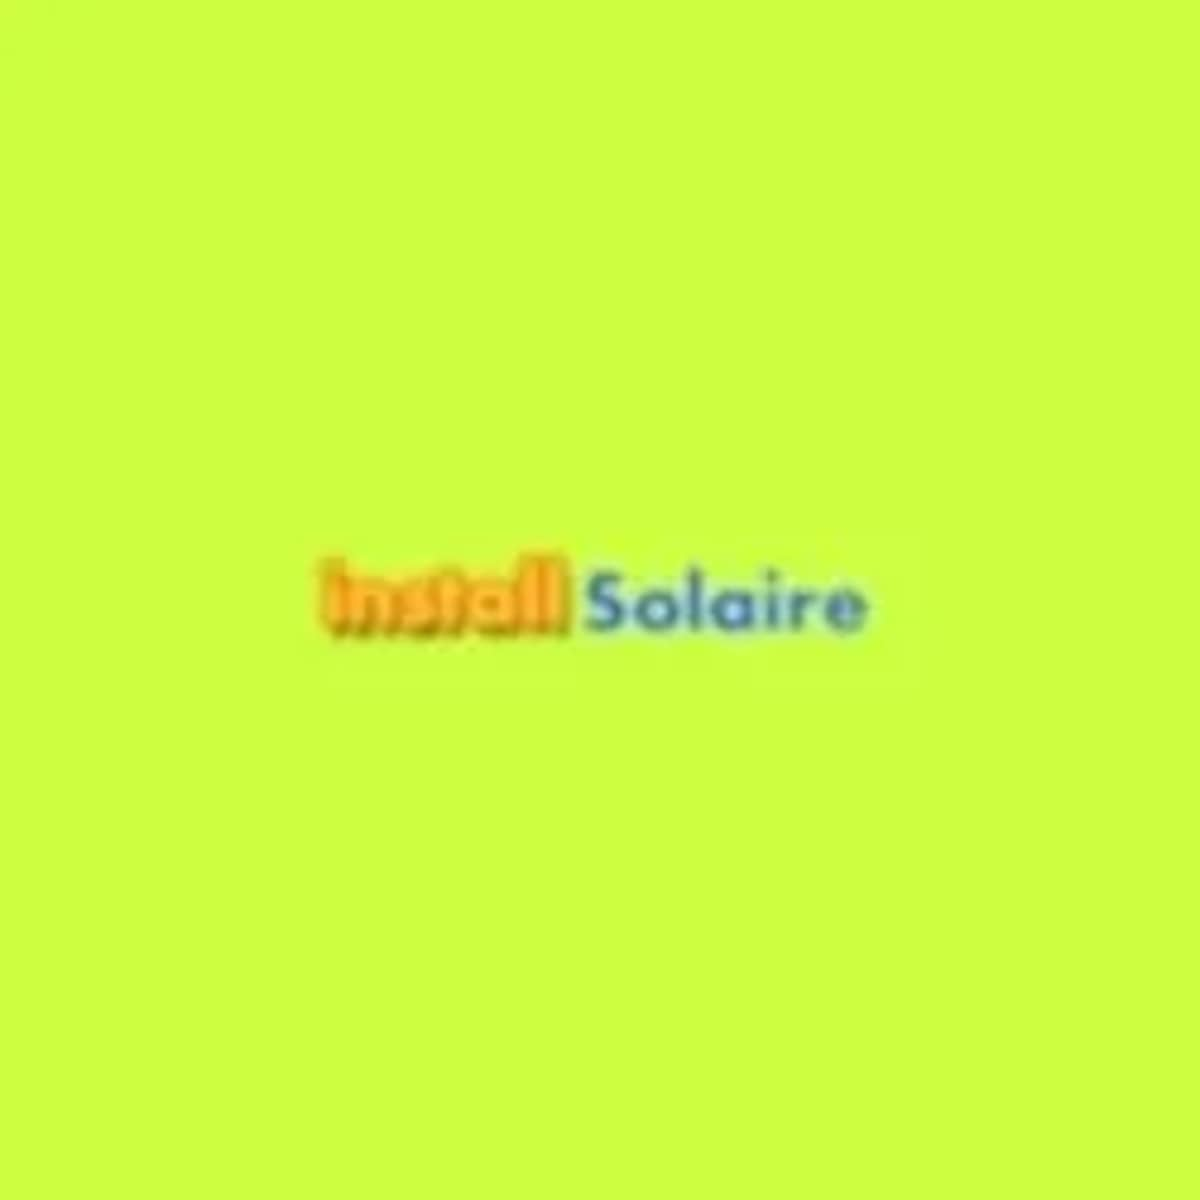 Eis Install Energies-Install Solaire